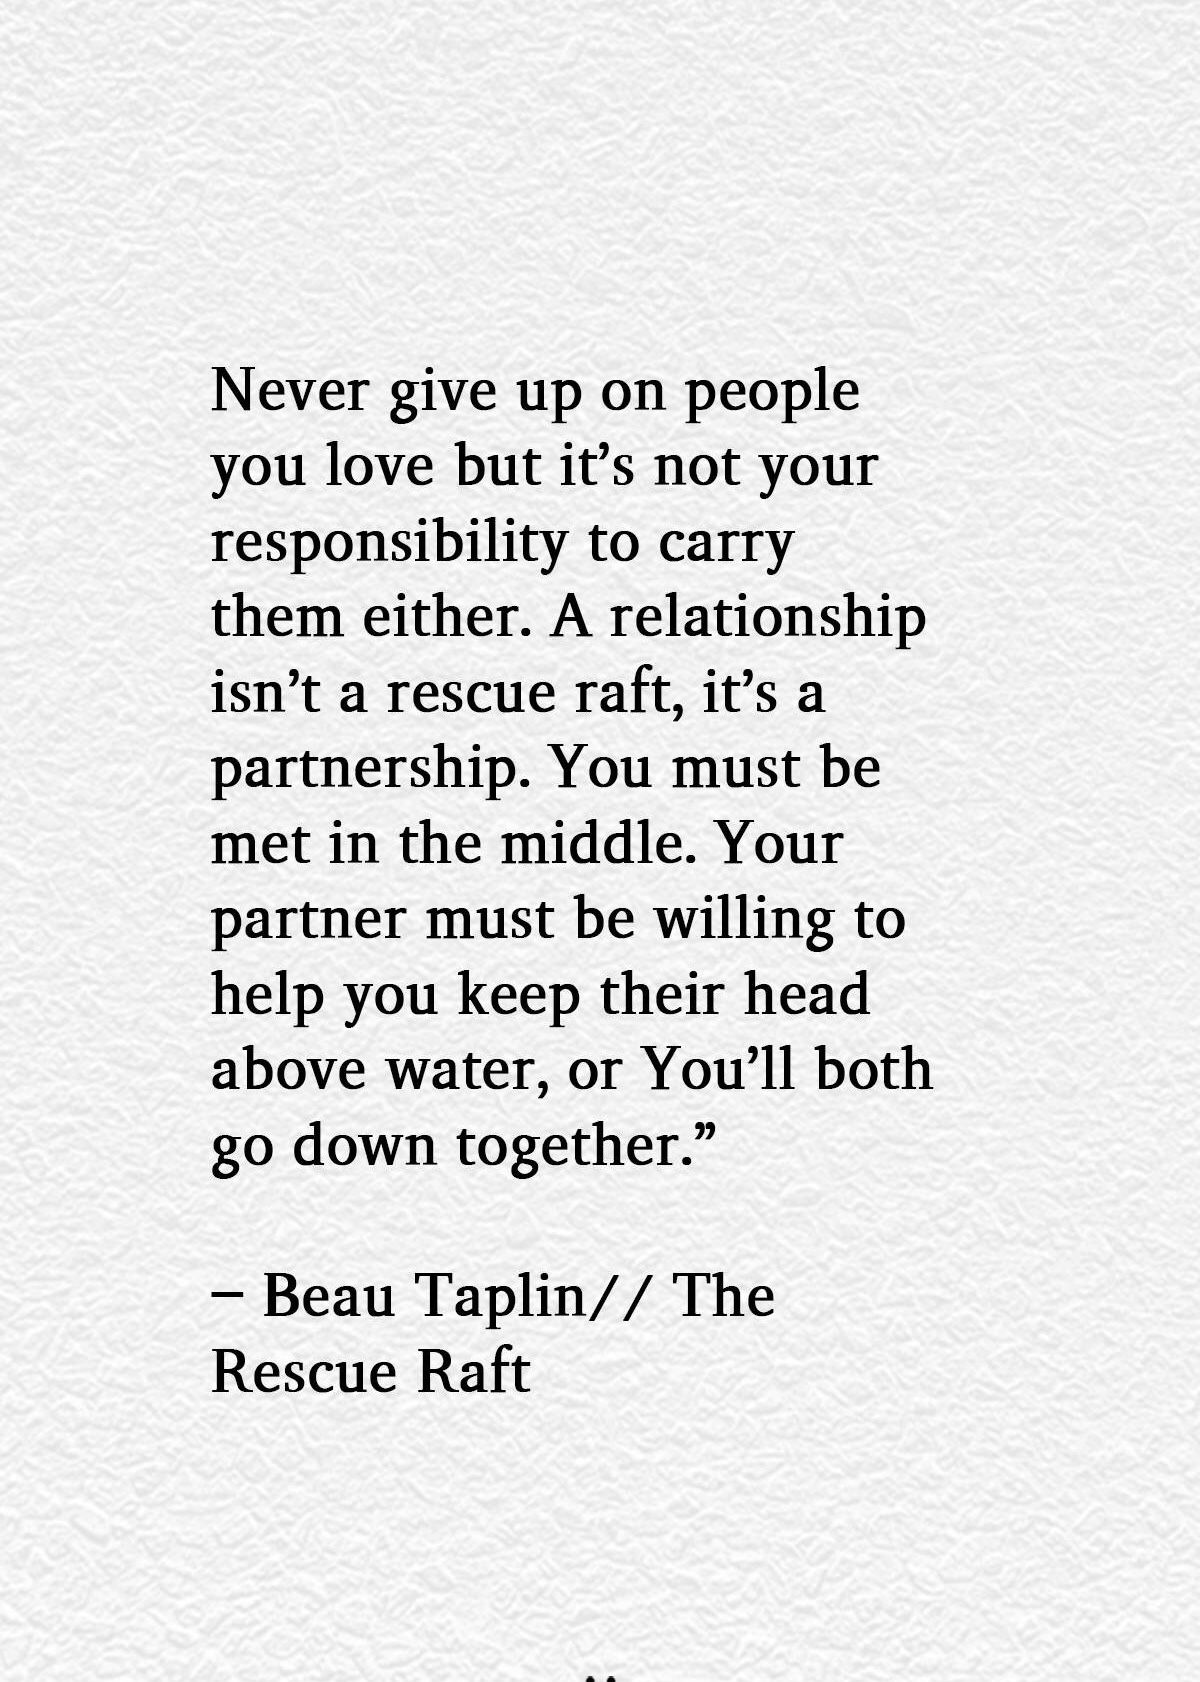 Pin On Relationship Trust Love Life Quotes